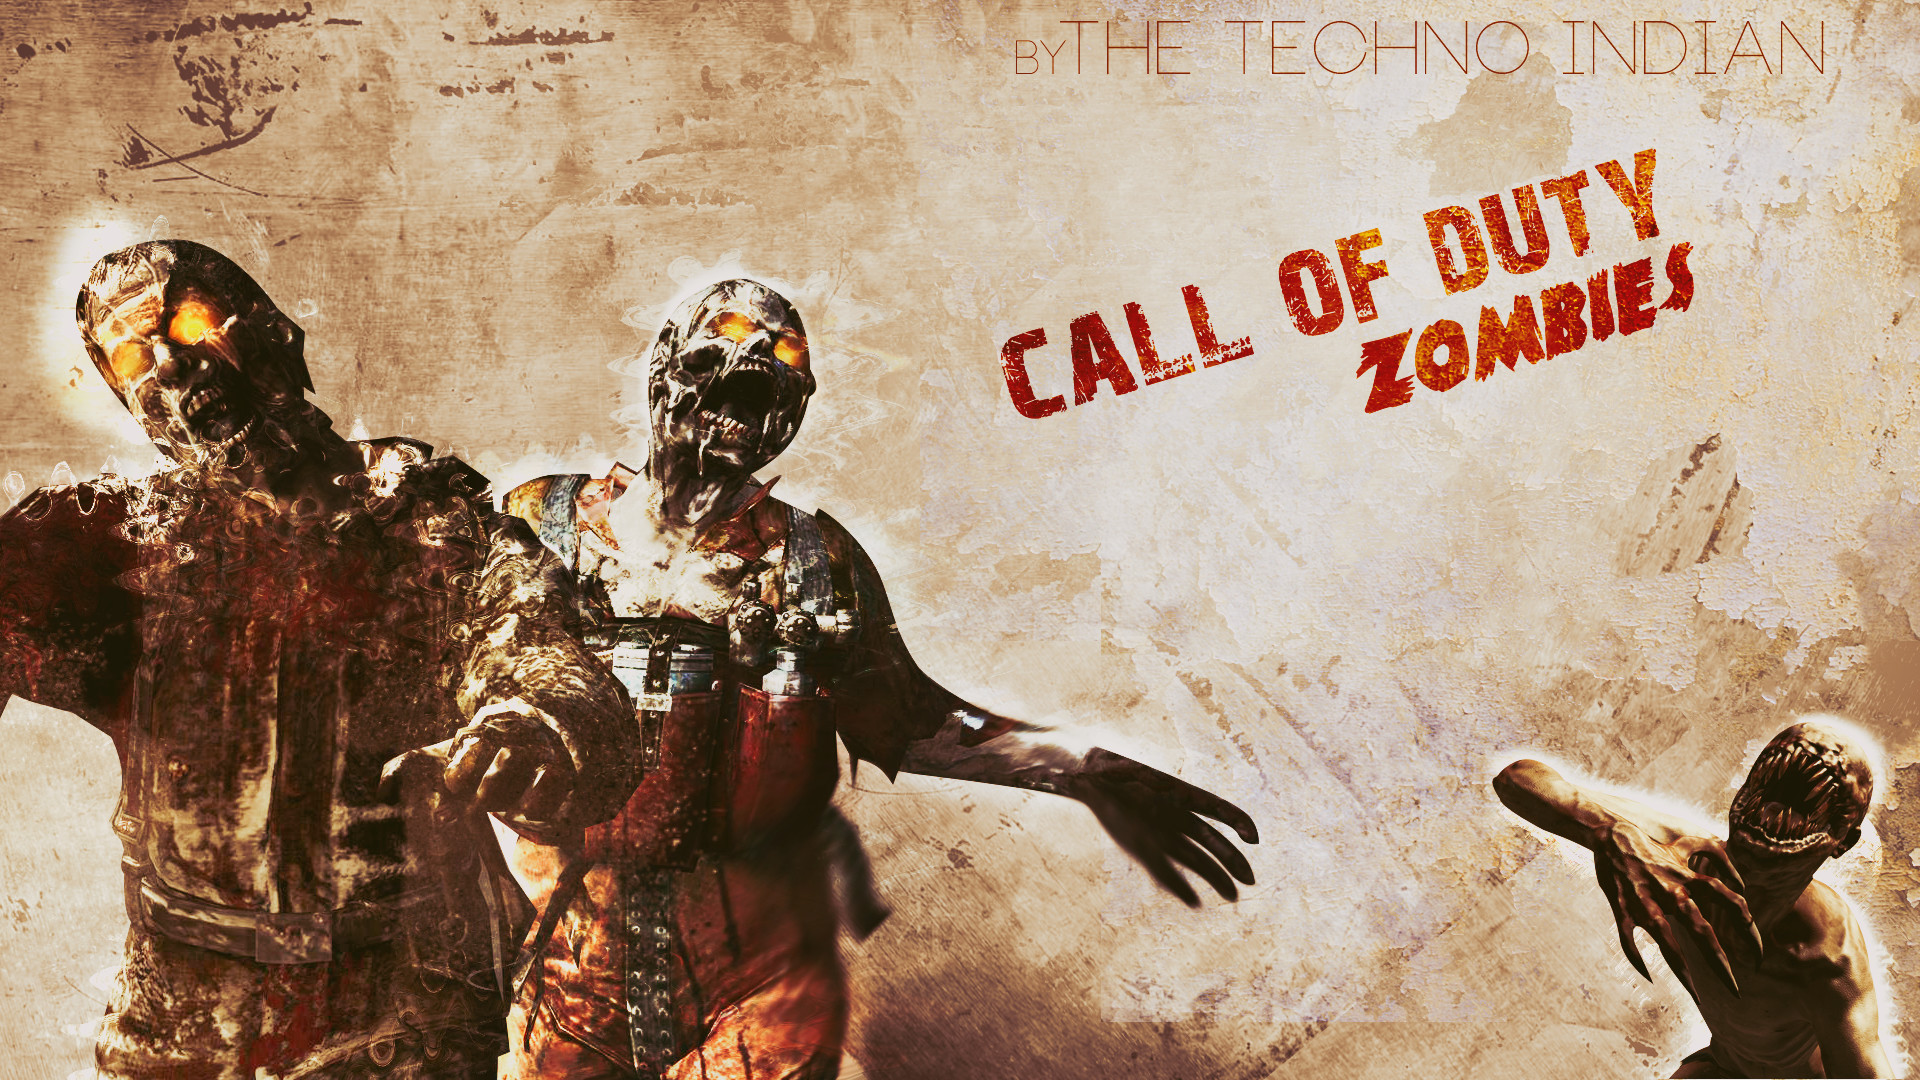 1920x1080 Call Of Duty Zombies Wallpaper by TheTechnoIndian on DeviantArt